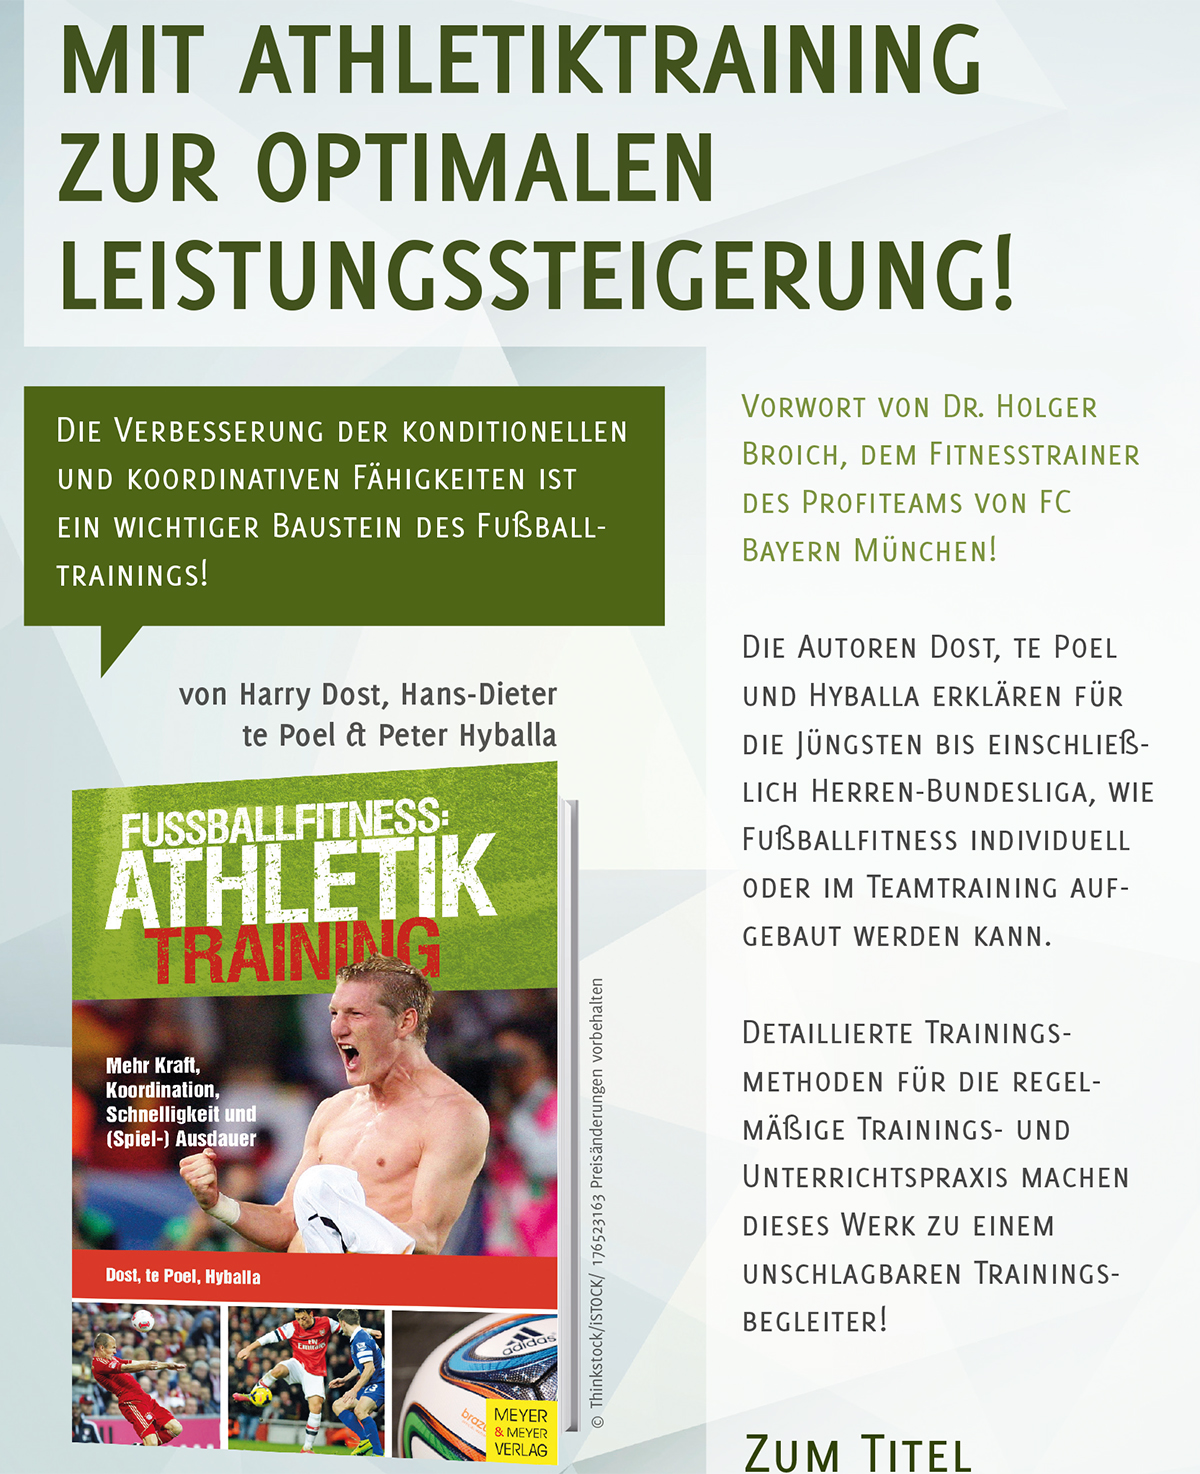 Athletiktraining1